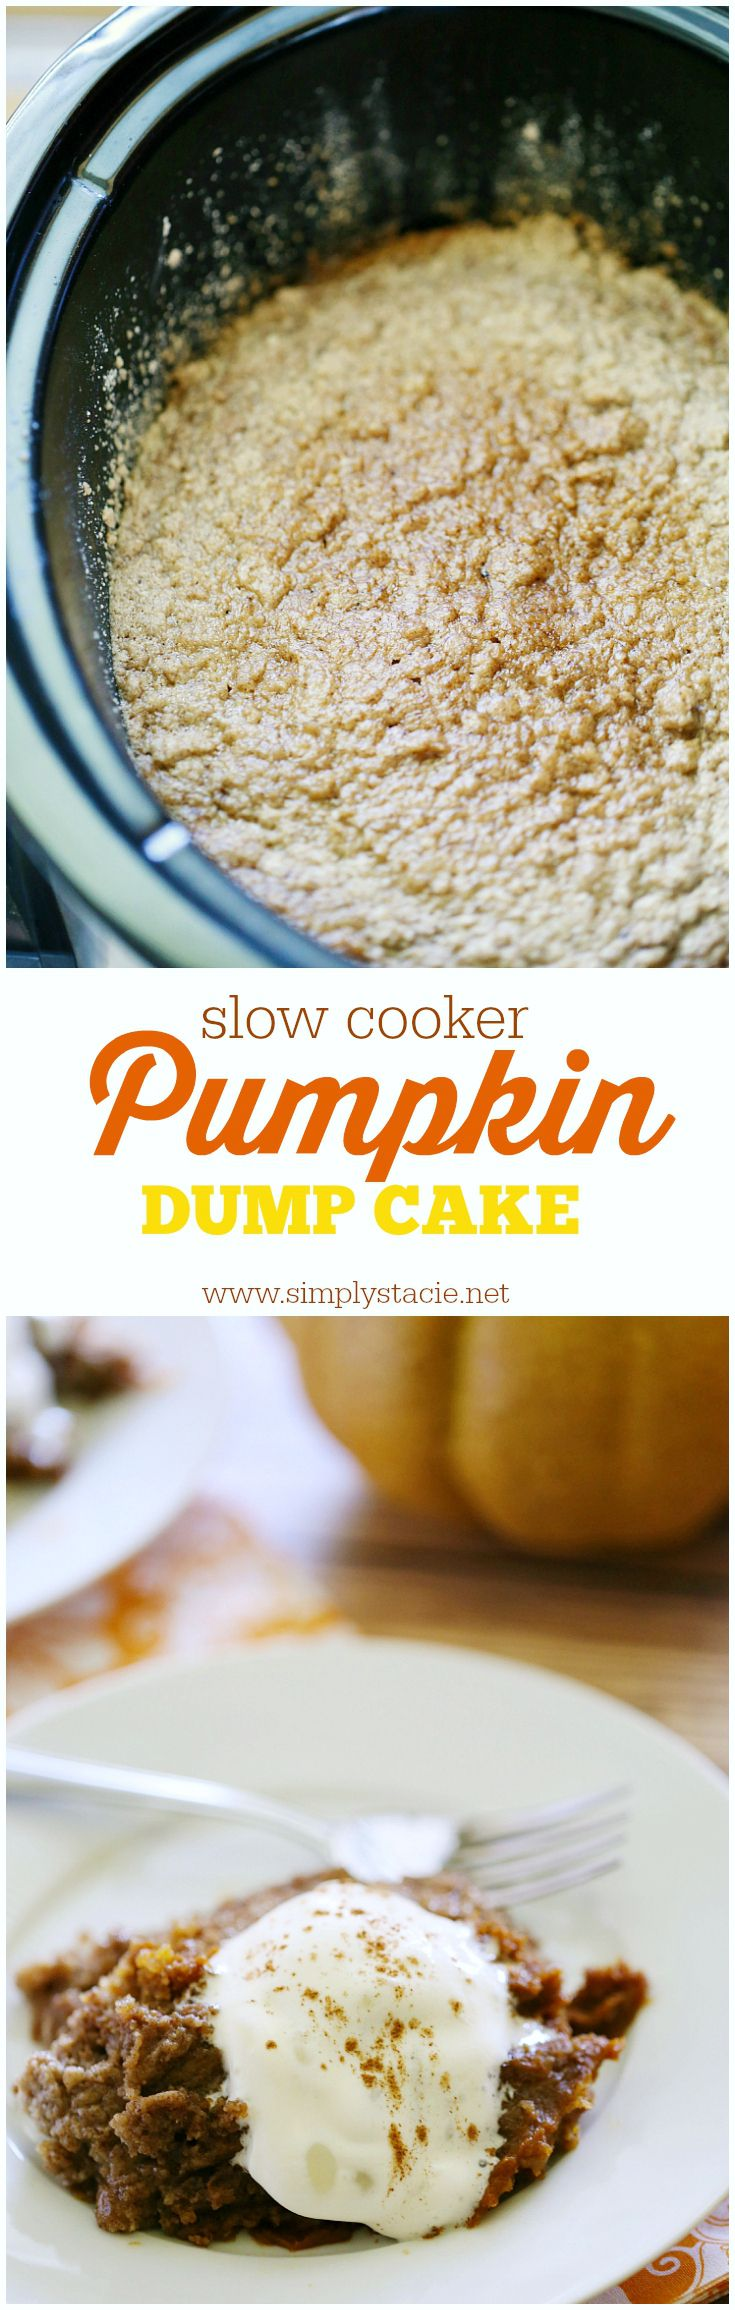 Slow Cooker Pumpkin Dump Cake - The name is a little weird, but don't let it scare you off. This Slow Cooker Pumpkin Dump Cake is an easy fall dessert with only a few ingredients!